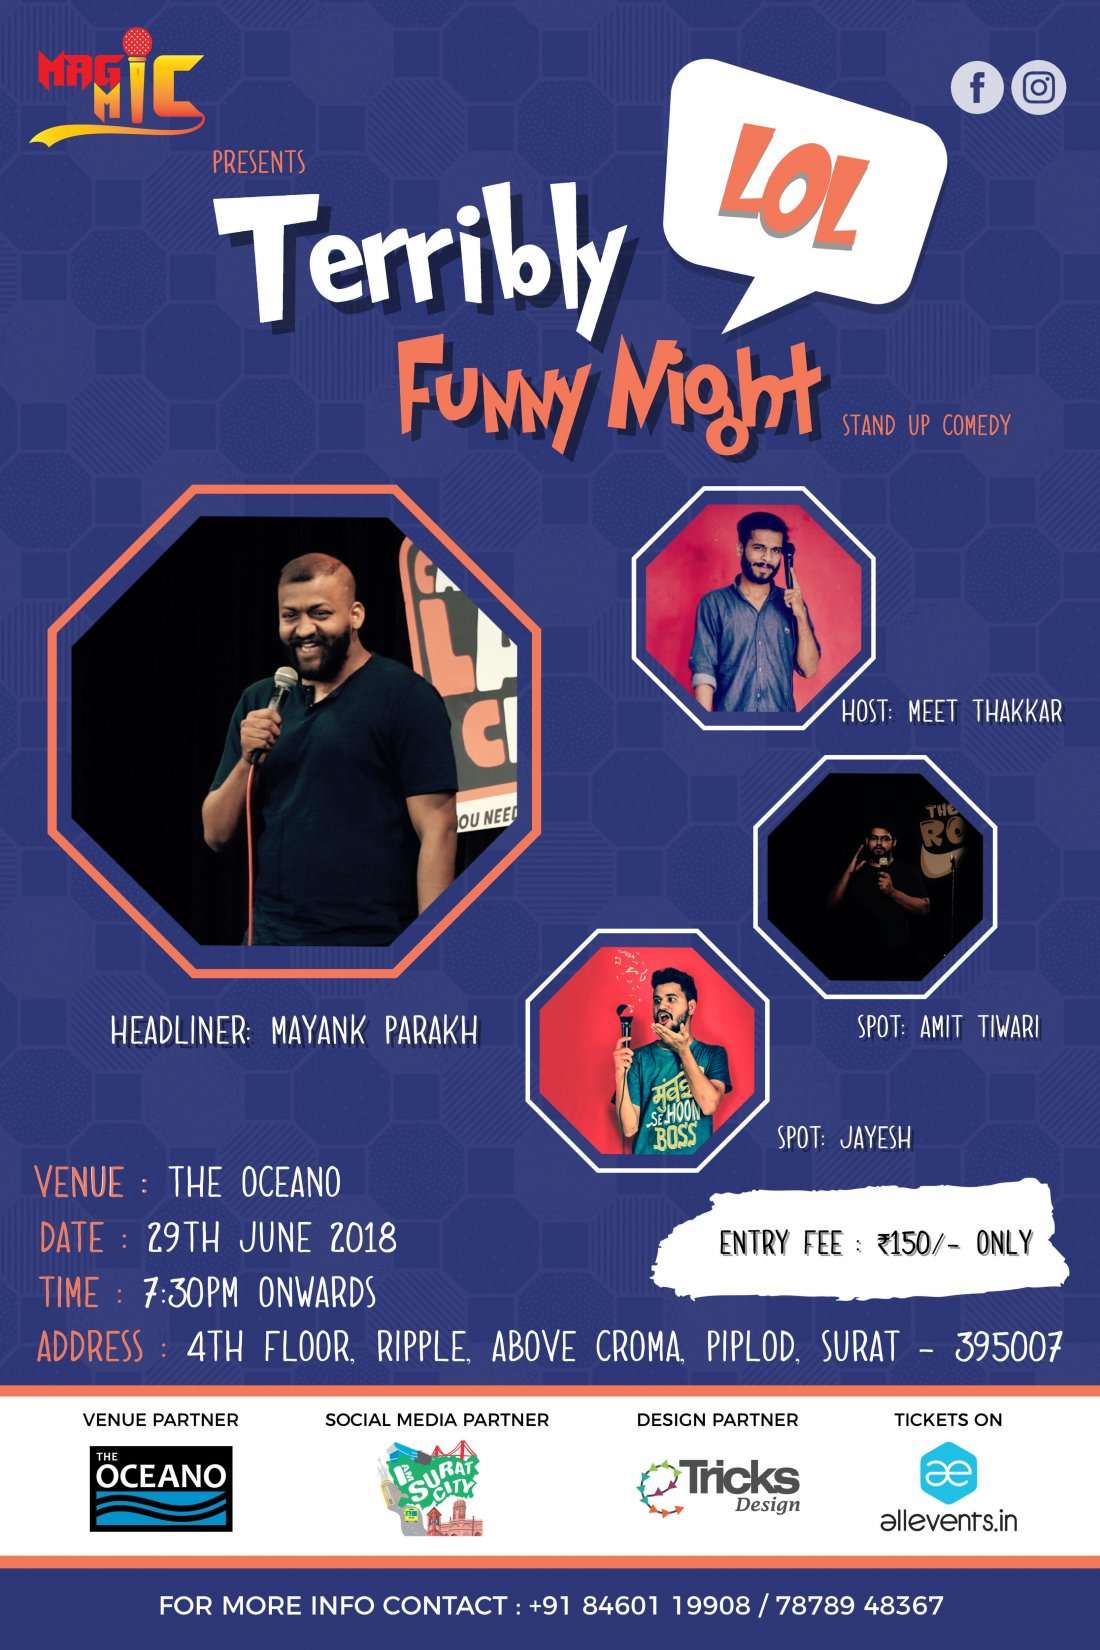 Terribly Funny Night - Standup Comedy